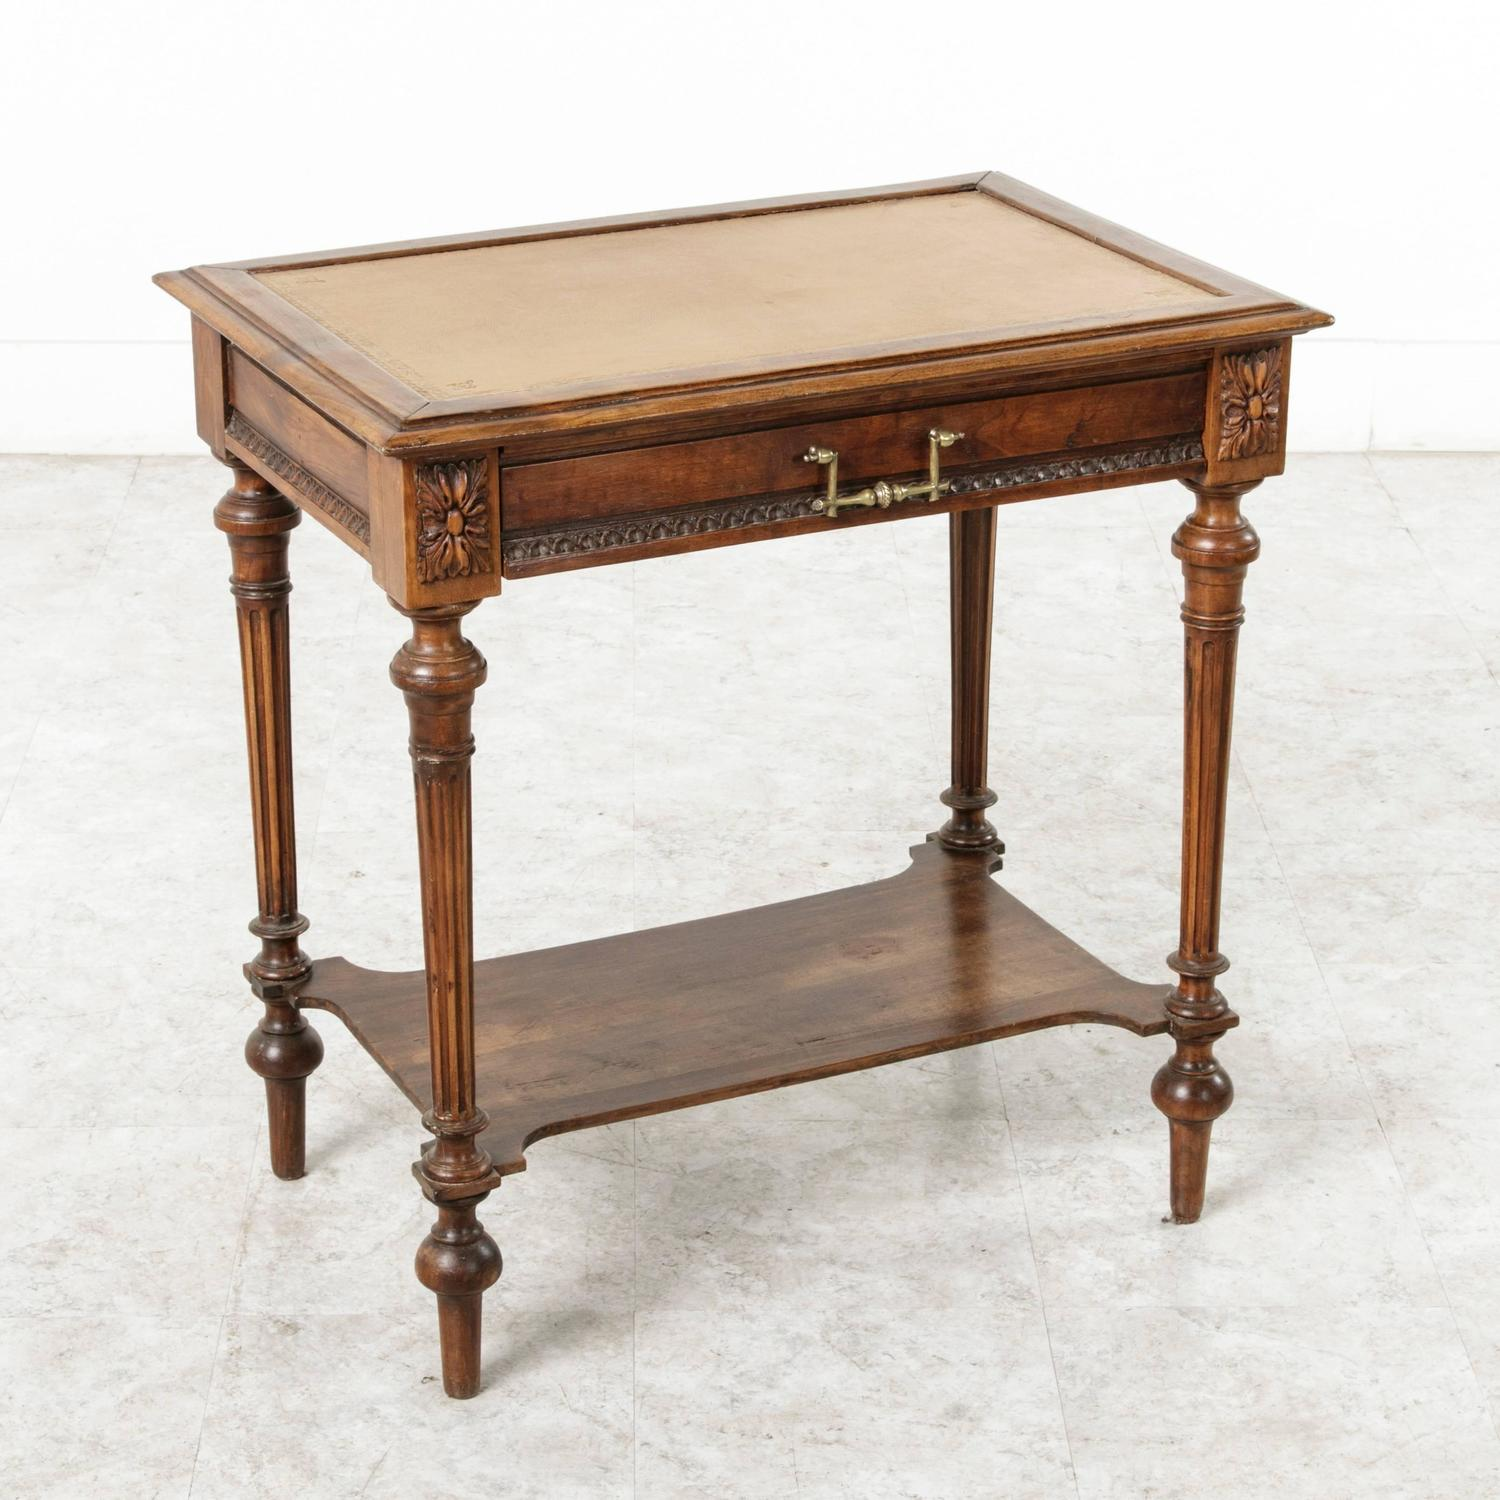 henri ii 19th century french side table or desk with. Black Bedroom Furniture Sets. Home Design Ideas